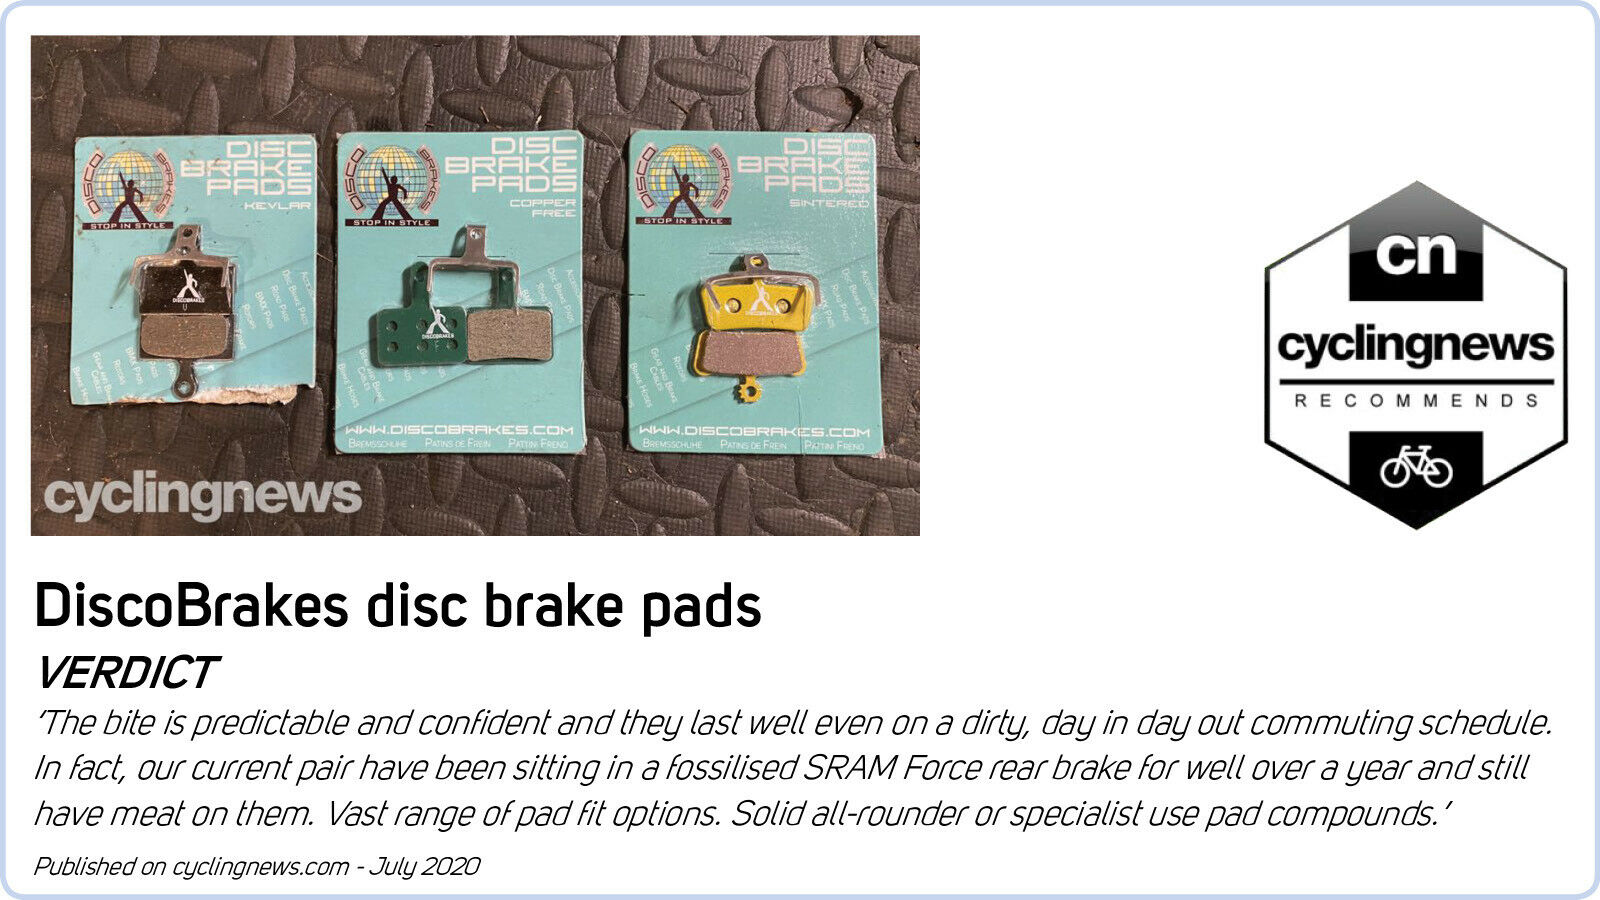 4 PADS DISC BRAKE PADS FOR DSK-650 610 420 400 200 XNINE IN 4MM OUT 5.5MM